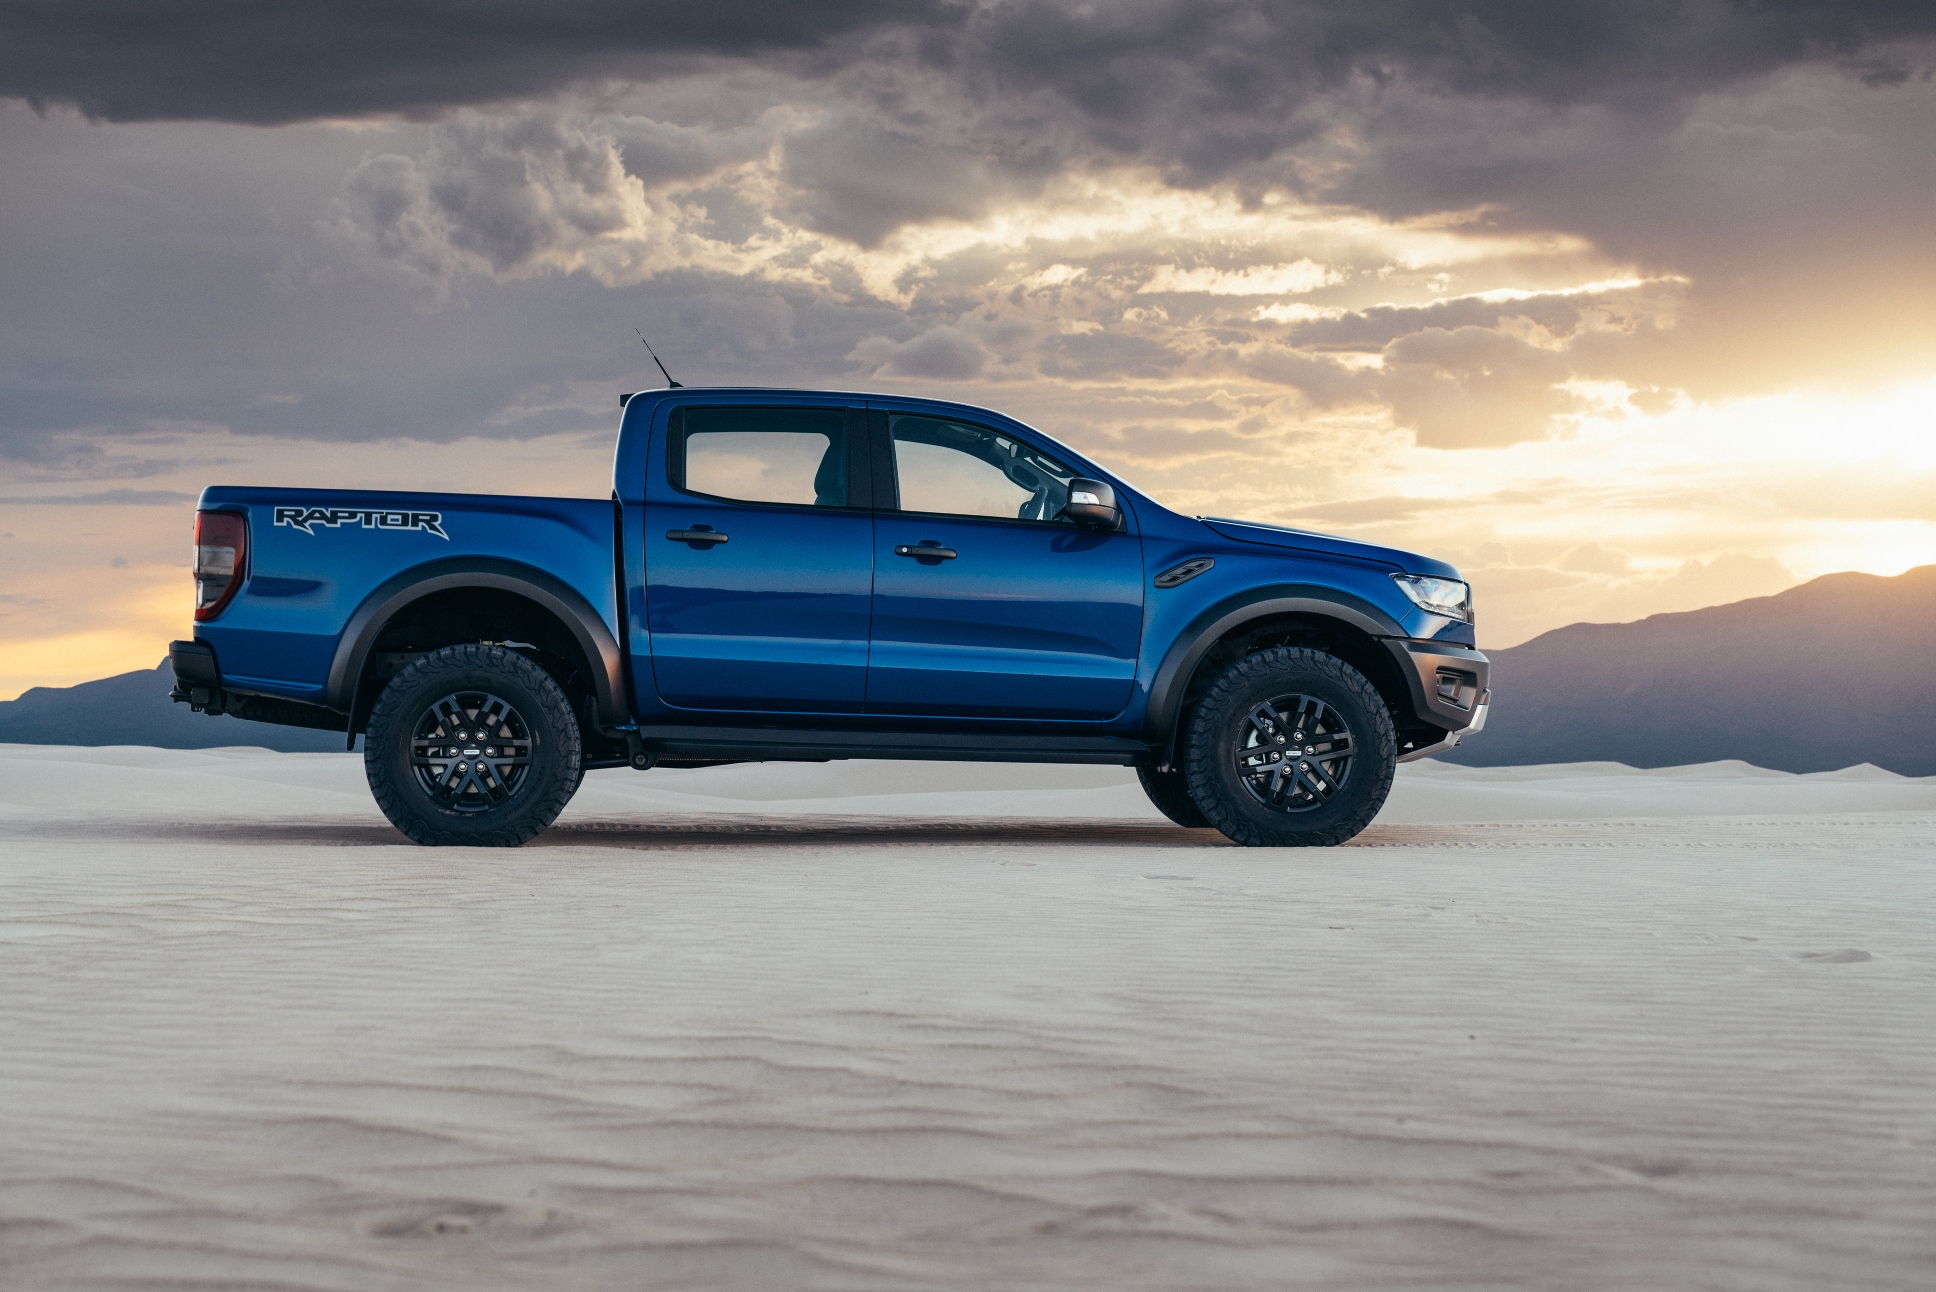 Ford Unleashes the Ranger Raptor, But There's a Catch